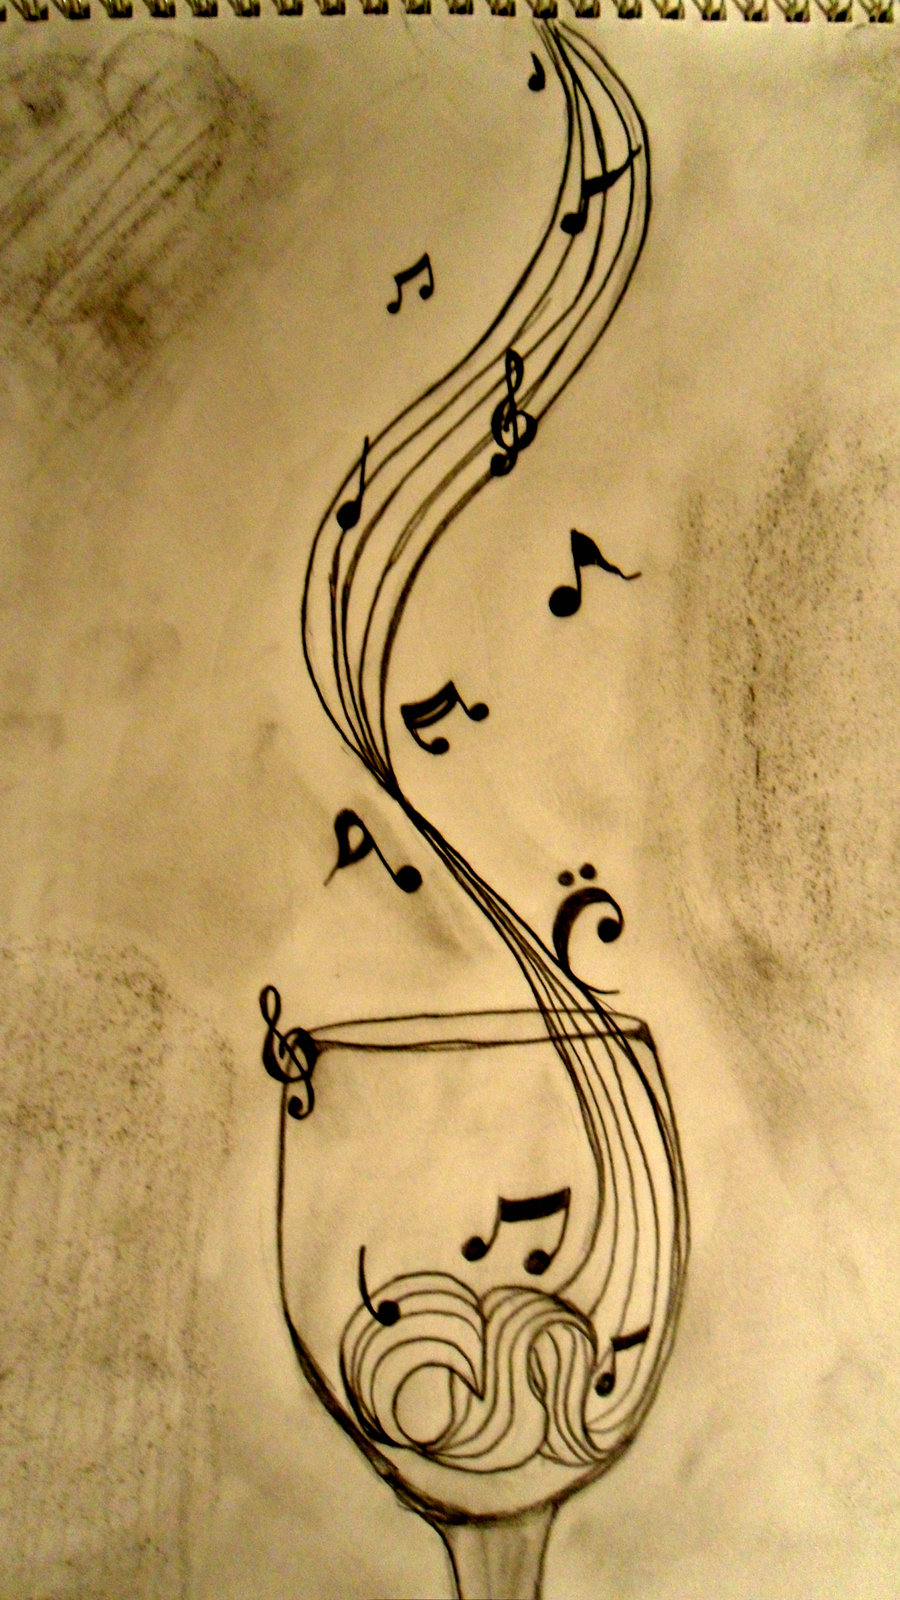 Drawn music notes sketched Download Sketch Art Note Drawing